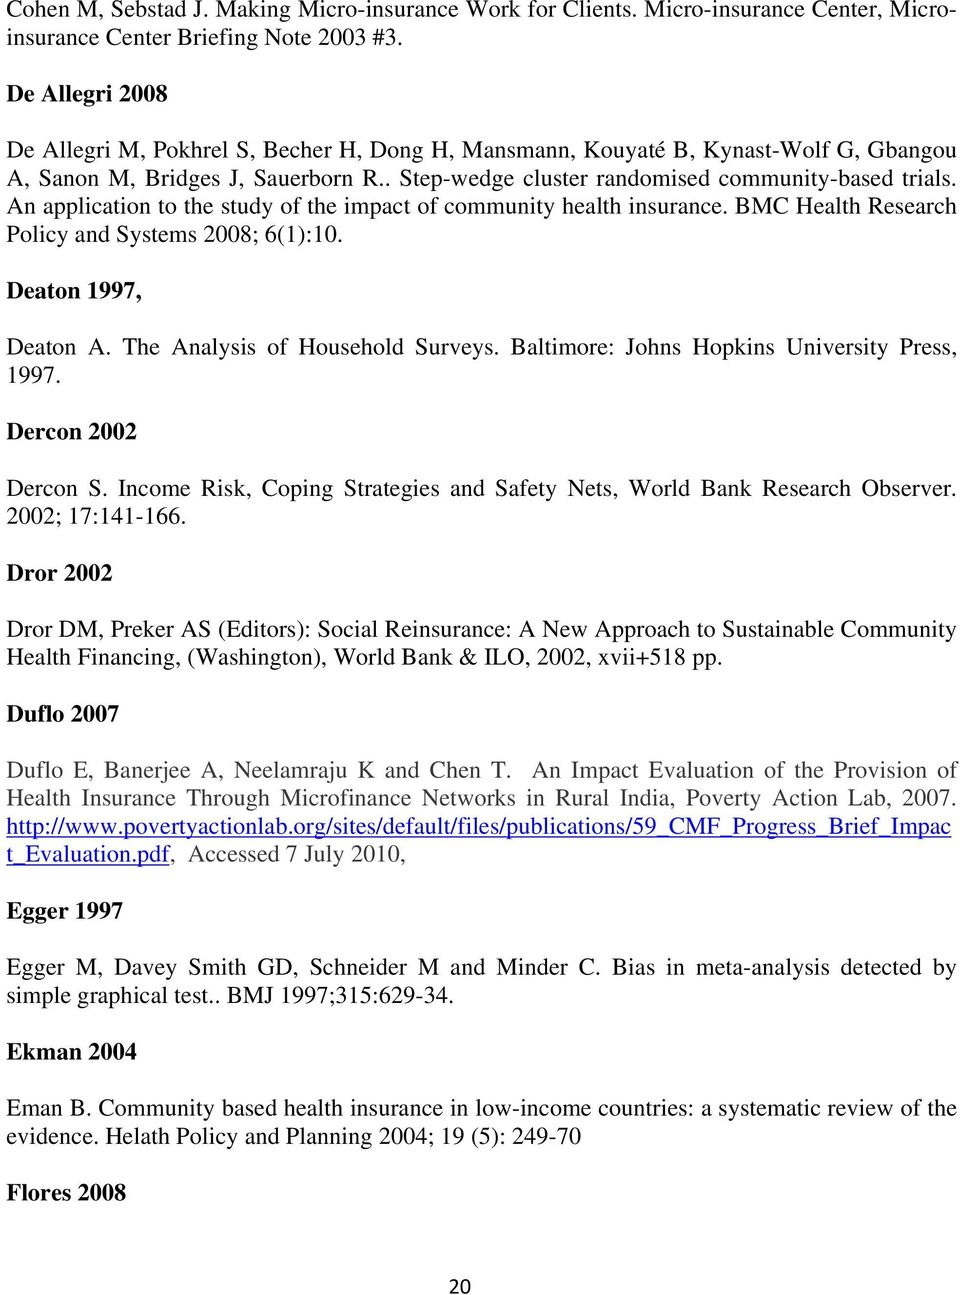 An application to the study of the impact of community health insurance. BMC Health Research Policy and Systems 2008; 6(1):10. Deaton 1997, Deaton A. The Analysis of Household Surveys.